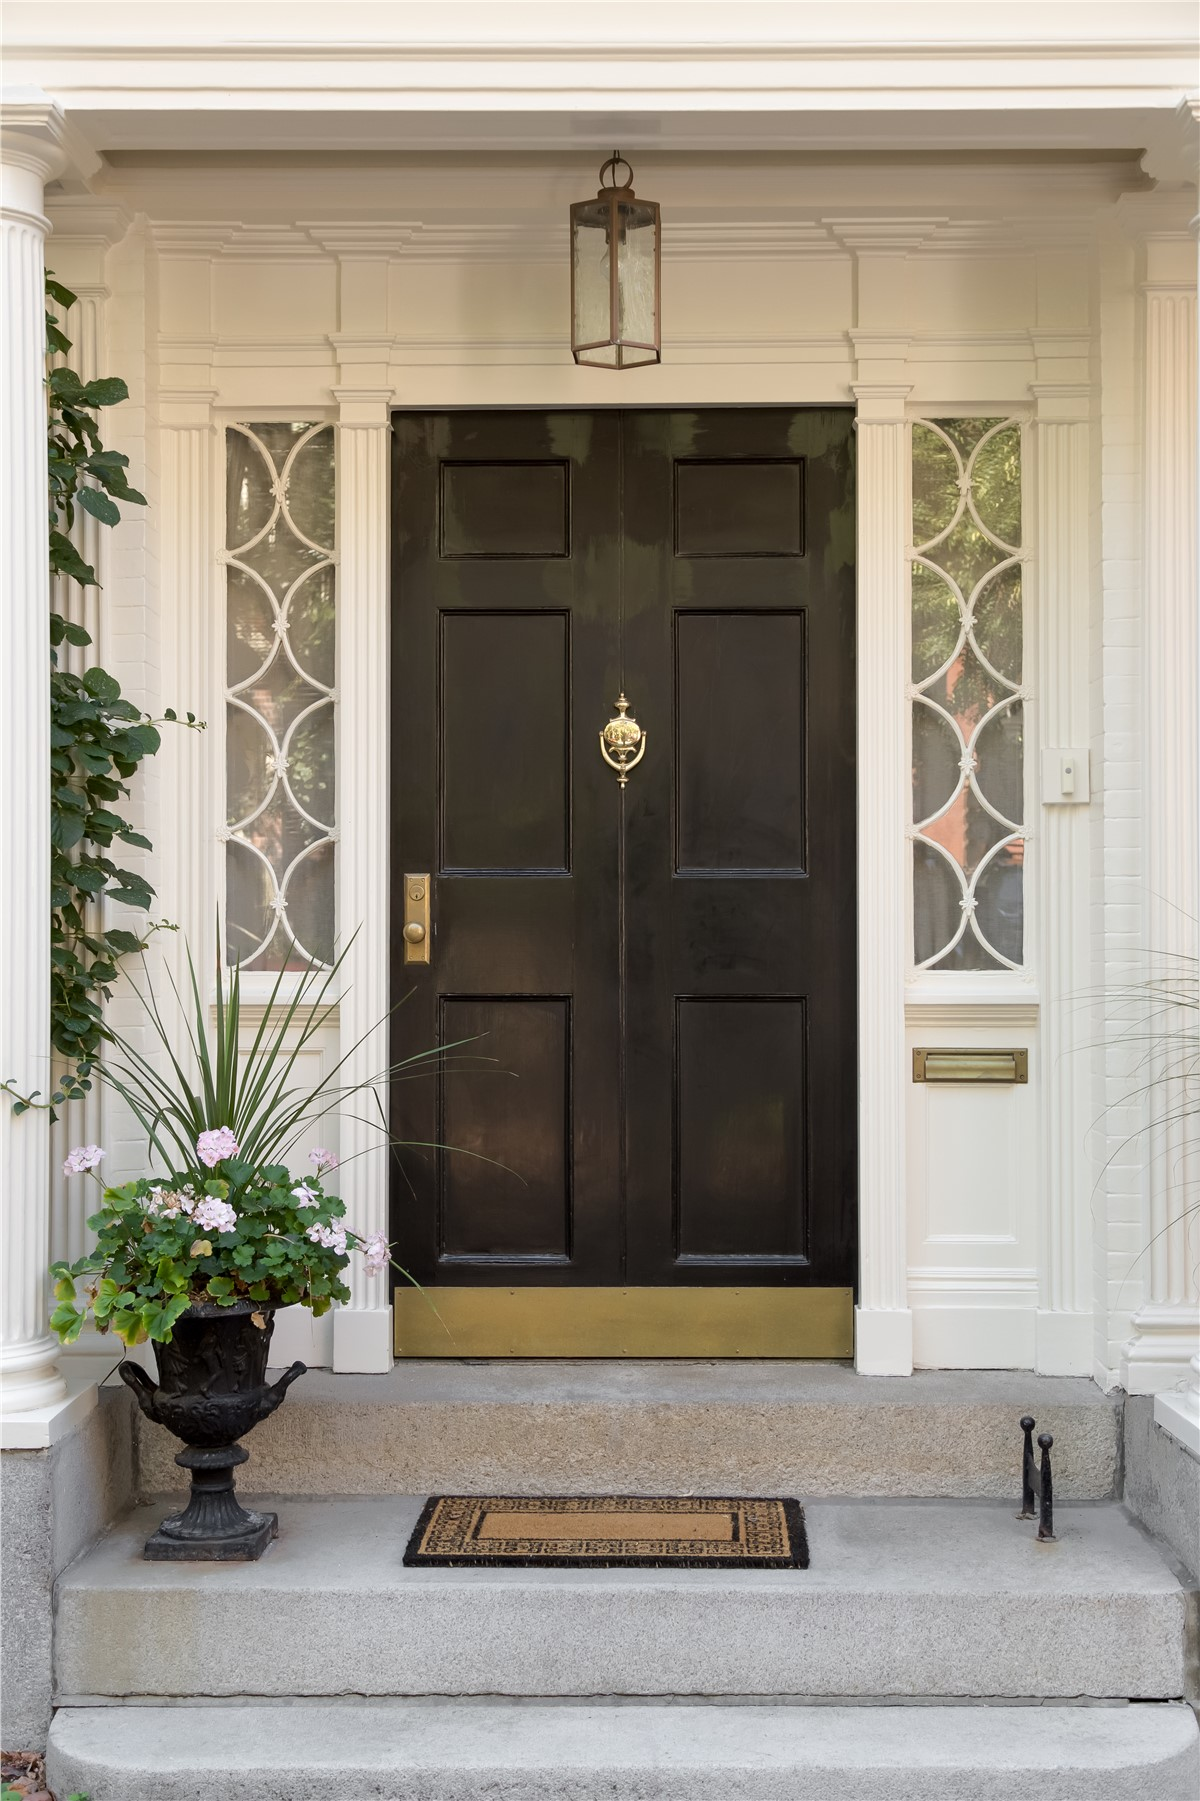 & Connecticut Entry Doors   CT Entry Door Company   US Window and Siding